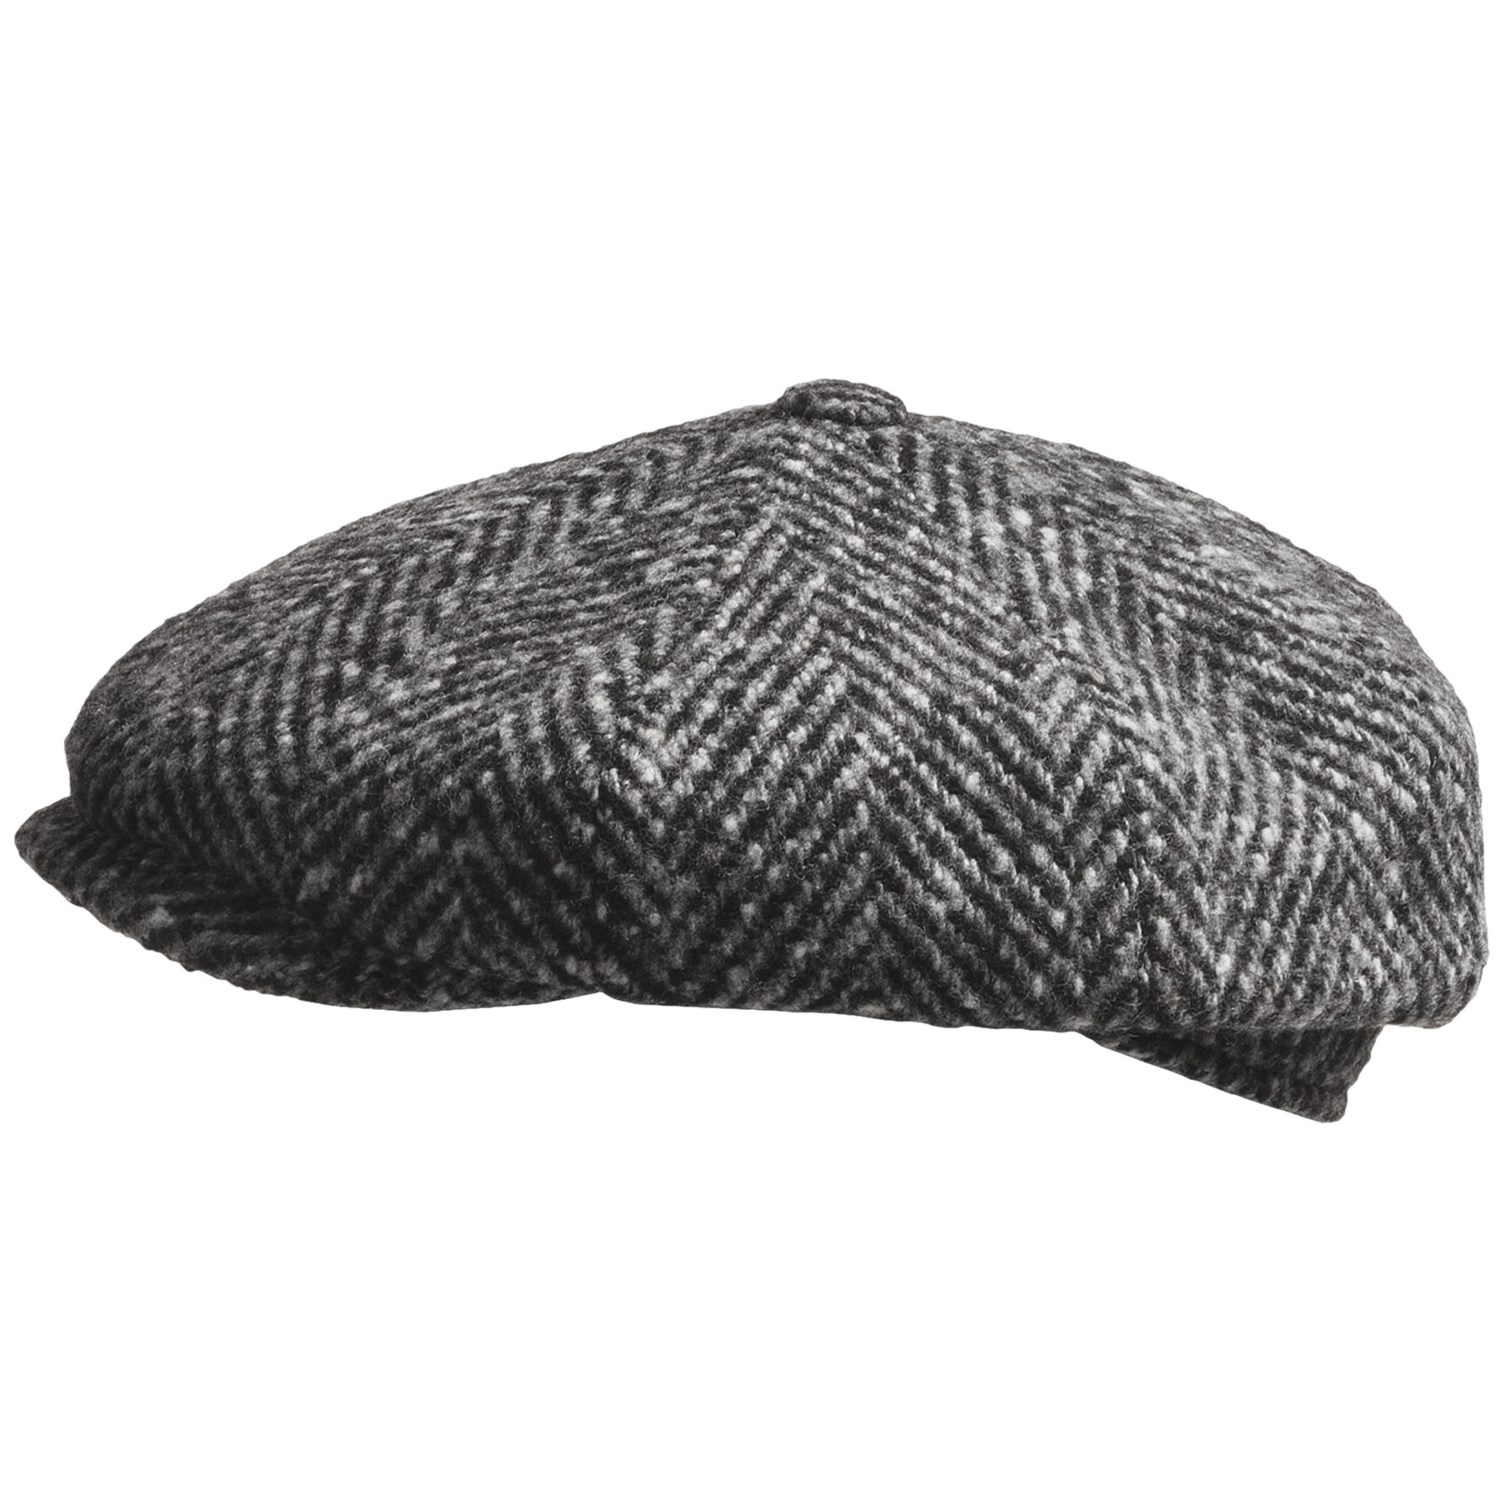 Shop online for Men's Newsboy & Driving Caps at wilmergolding6jn1.gq Find caps in fine wools, felts & linen. Free Shipping. Free Returns. All the time.